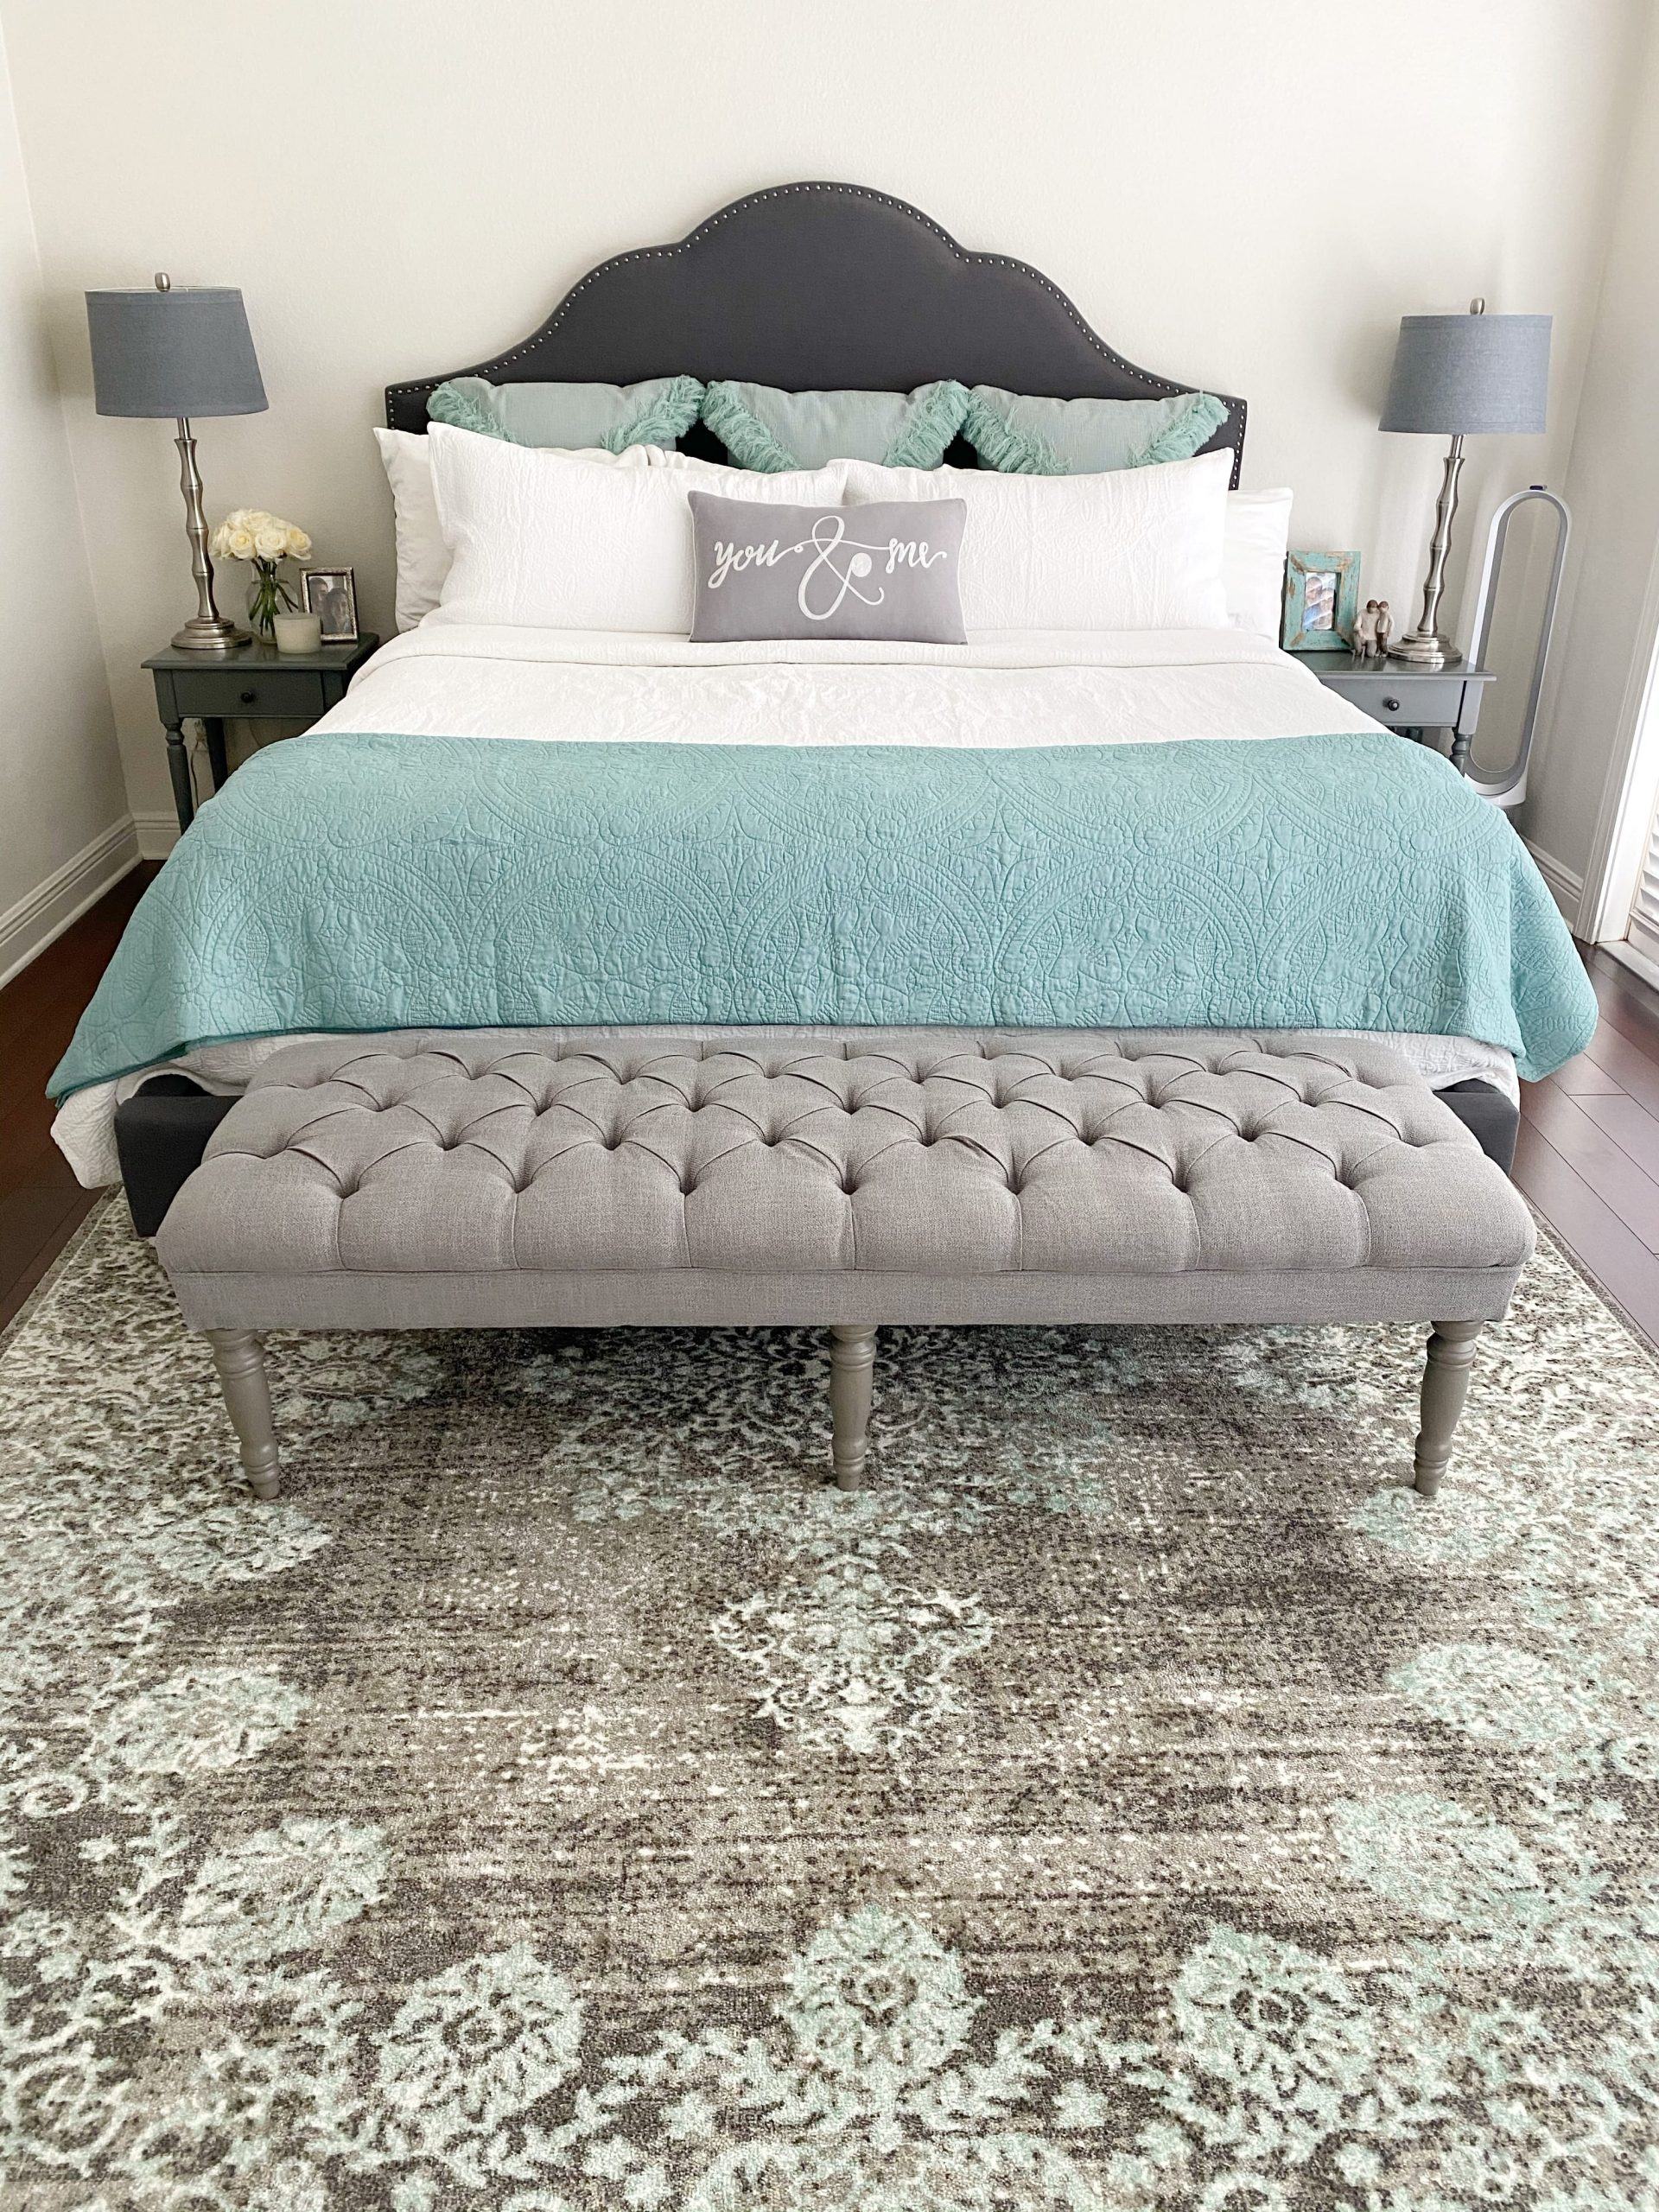 Lake House Master Bedroom Reveal Teal And Gray Bedroom Ideas